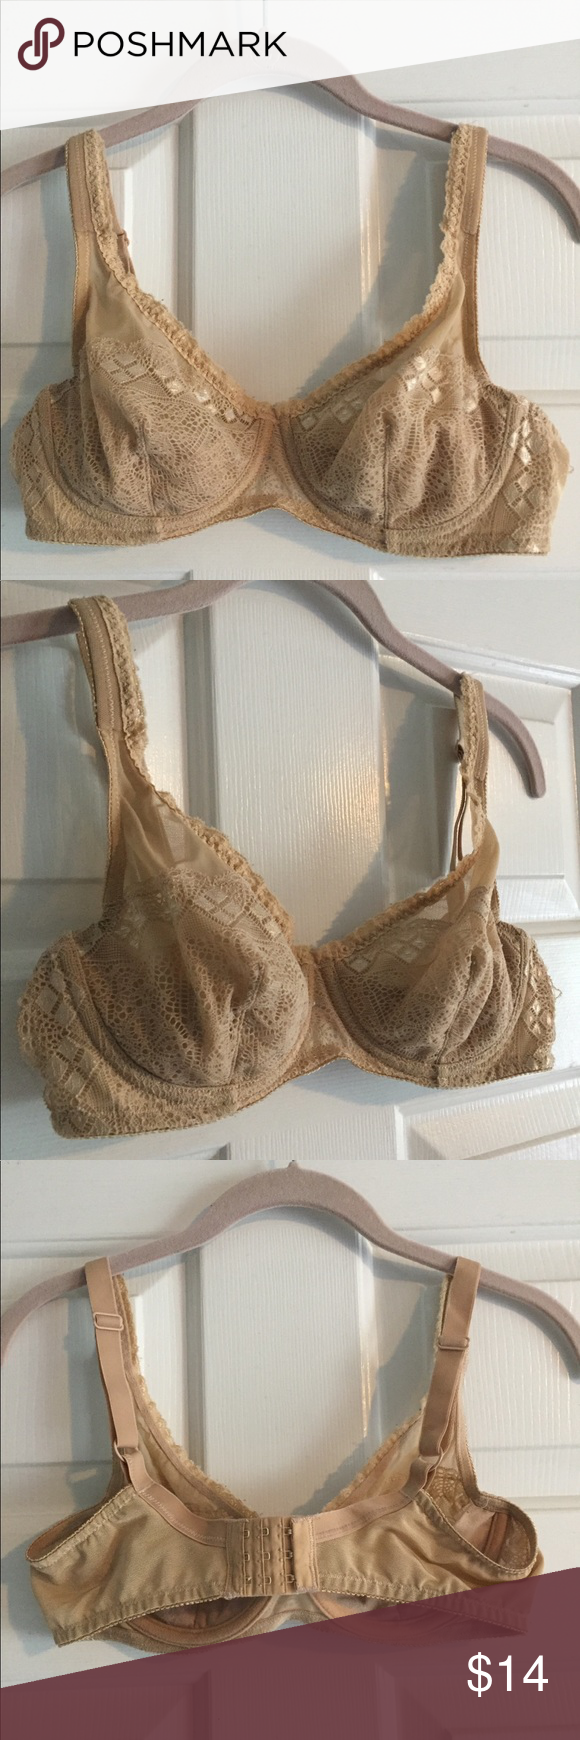 781cd099fe153 Barely Breezies Full Coverage Bra Gently used Barely Breezies beige  Underwire Full Coverage see through bra size 34B. Barely Breezies Intimates    Sleepwear ...